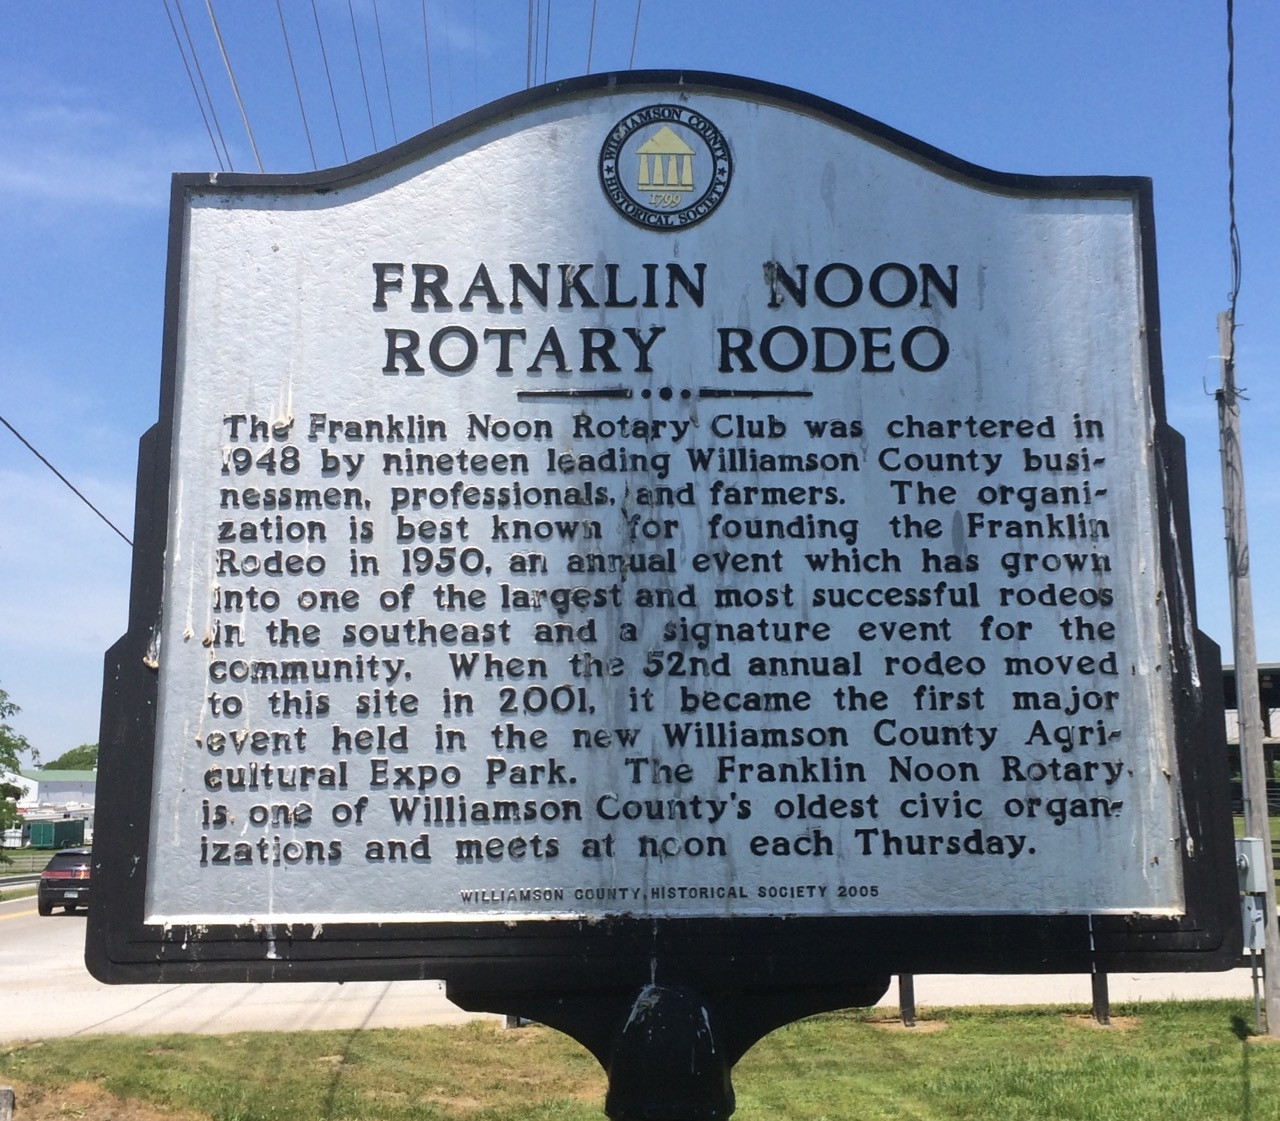 Franklin Noon Rotary Rodeo Marker